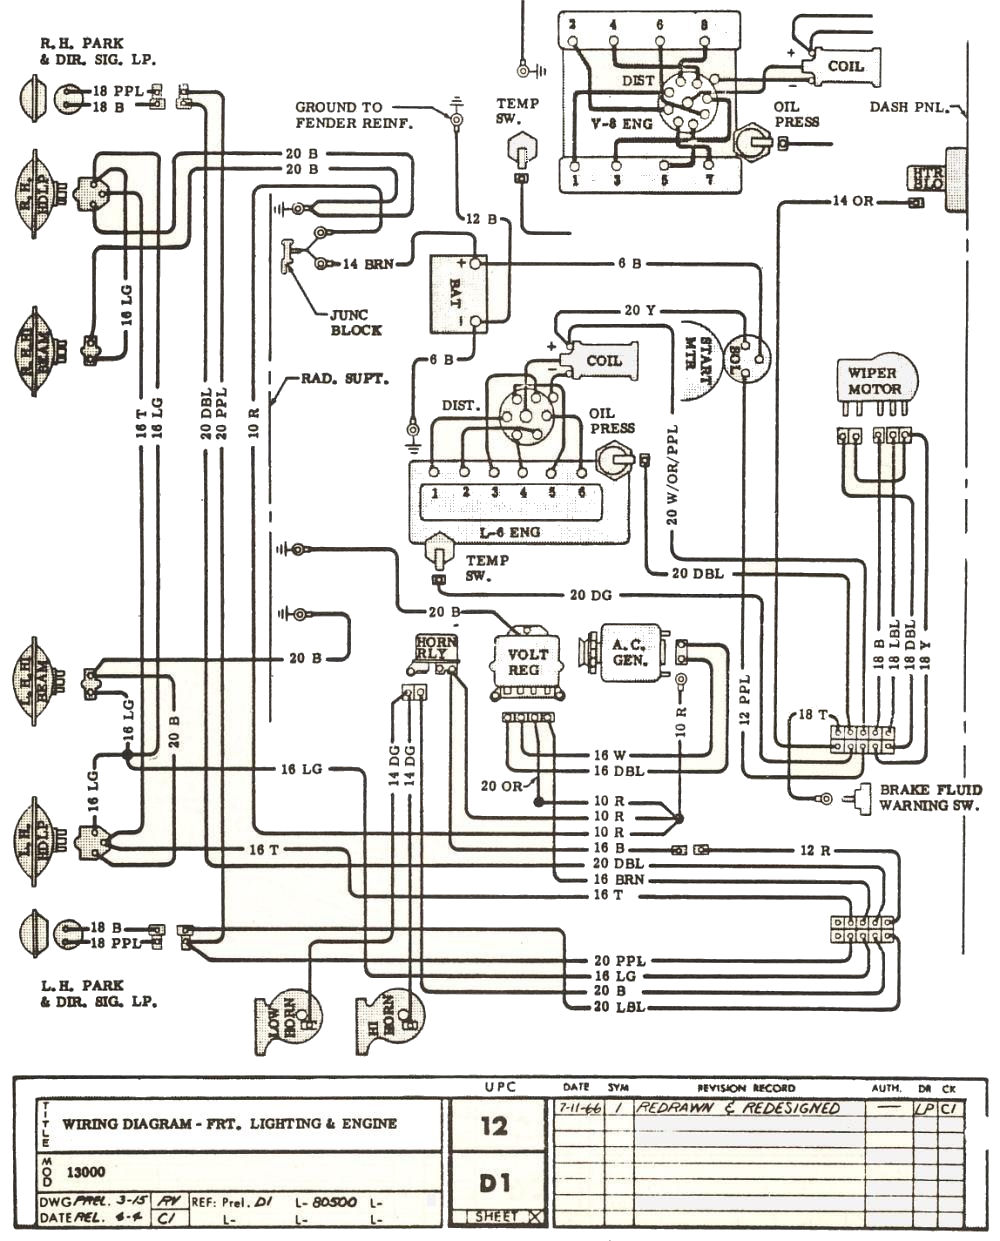 [WRG-3427] 67 Chevelle Dash Wiring Diagram